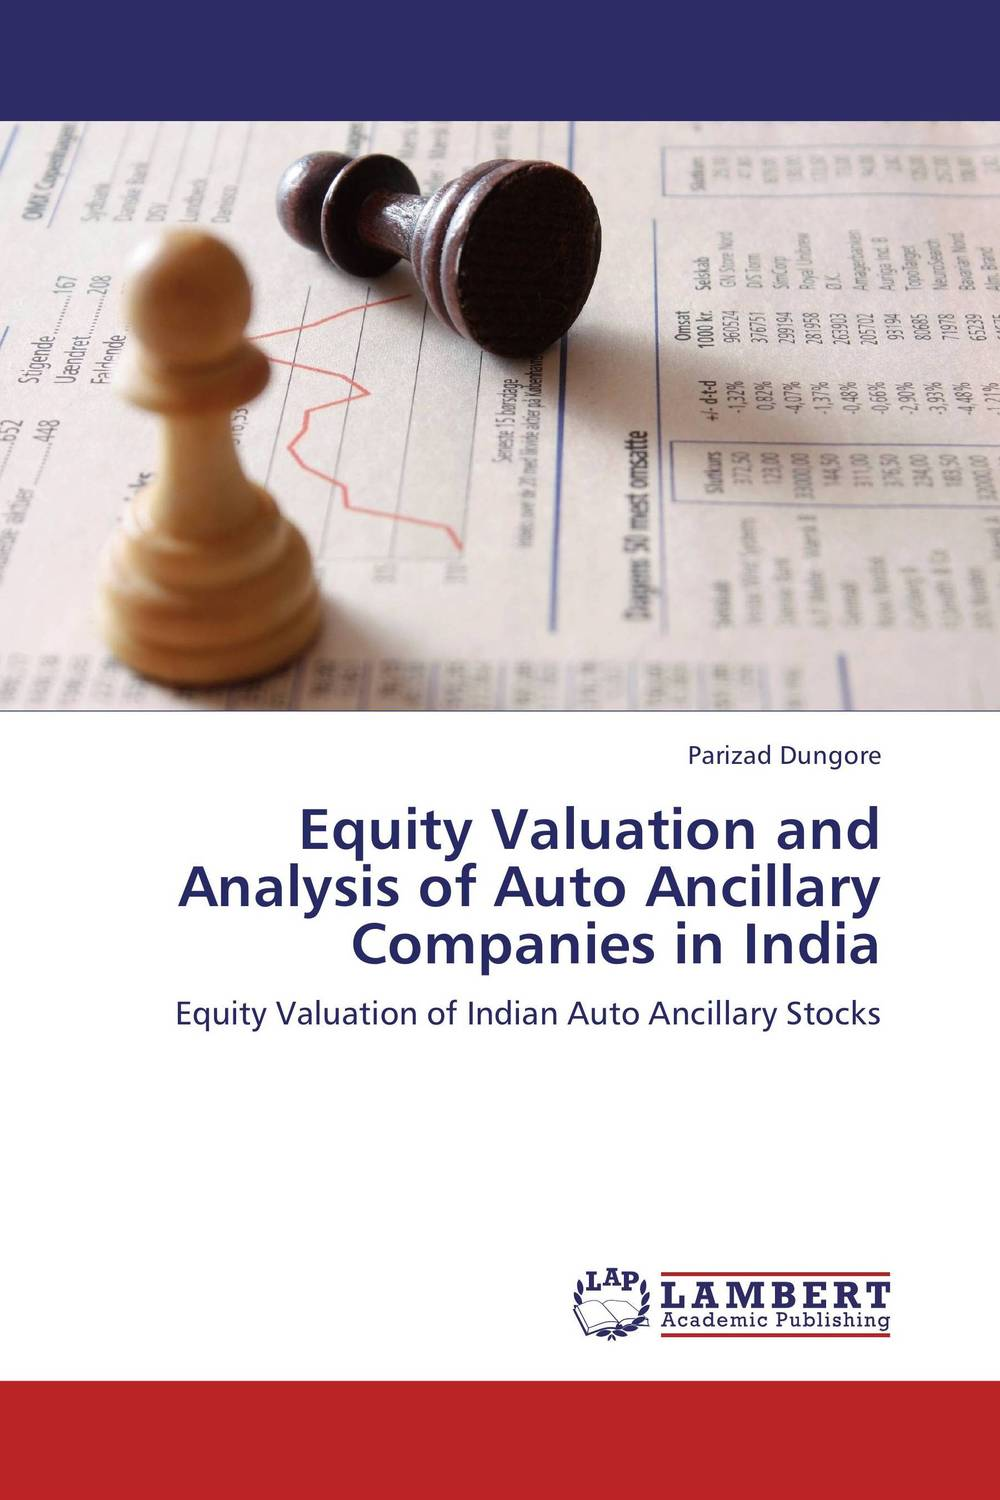 Equity Valuation and Analysis of Auto Ancillary Companies in India чехол для gps навигаторов 4 3 черный